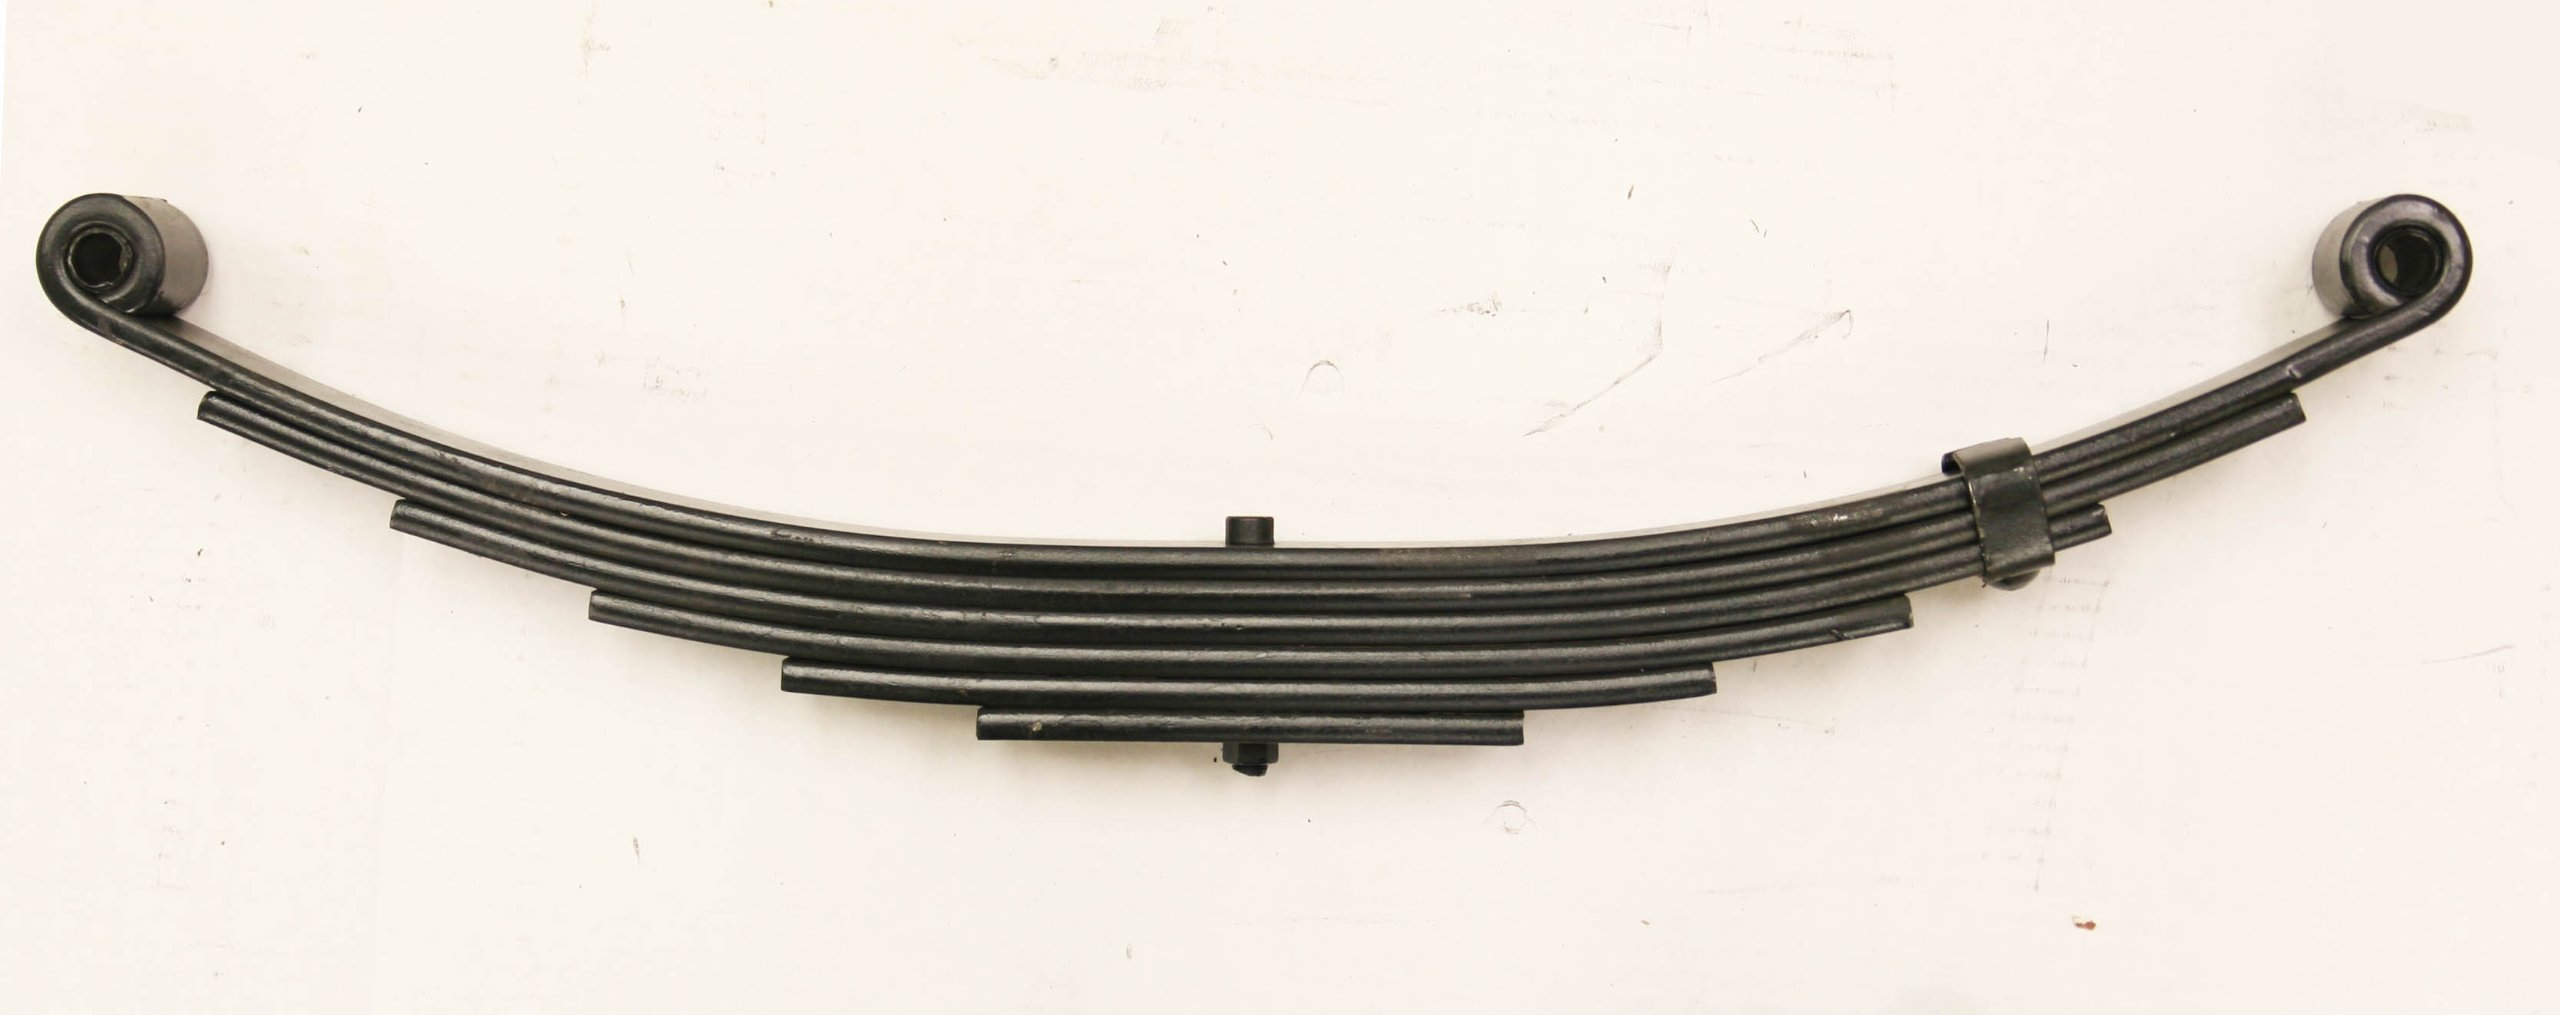 New Trailer Leaf Spring-6 Leaf Double Eye 3500lbs Capacity for 7000 Lbs Axle - 20029 by Libra